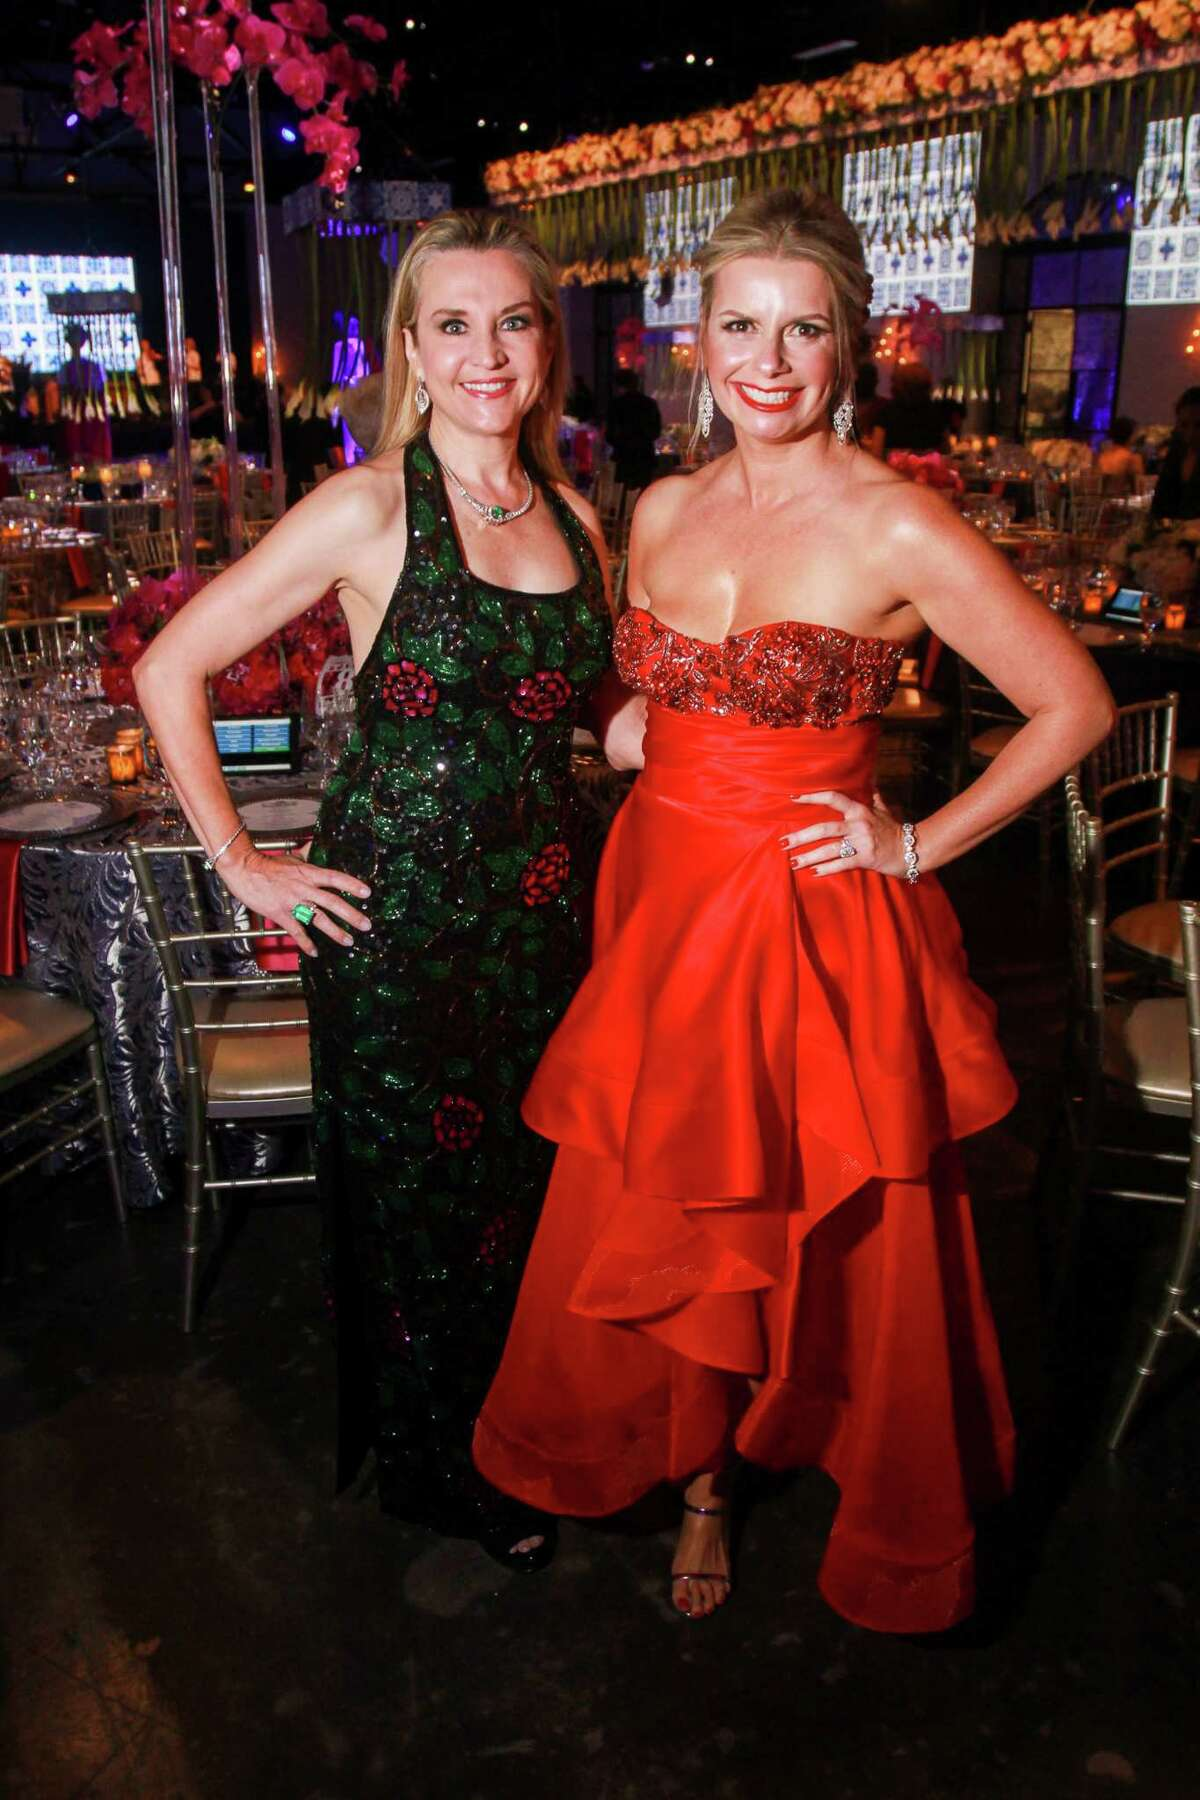 Mary D'Andrea, left, and Valerie Dieterich at the Opera Ball.